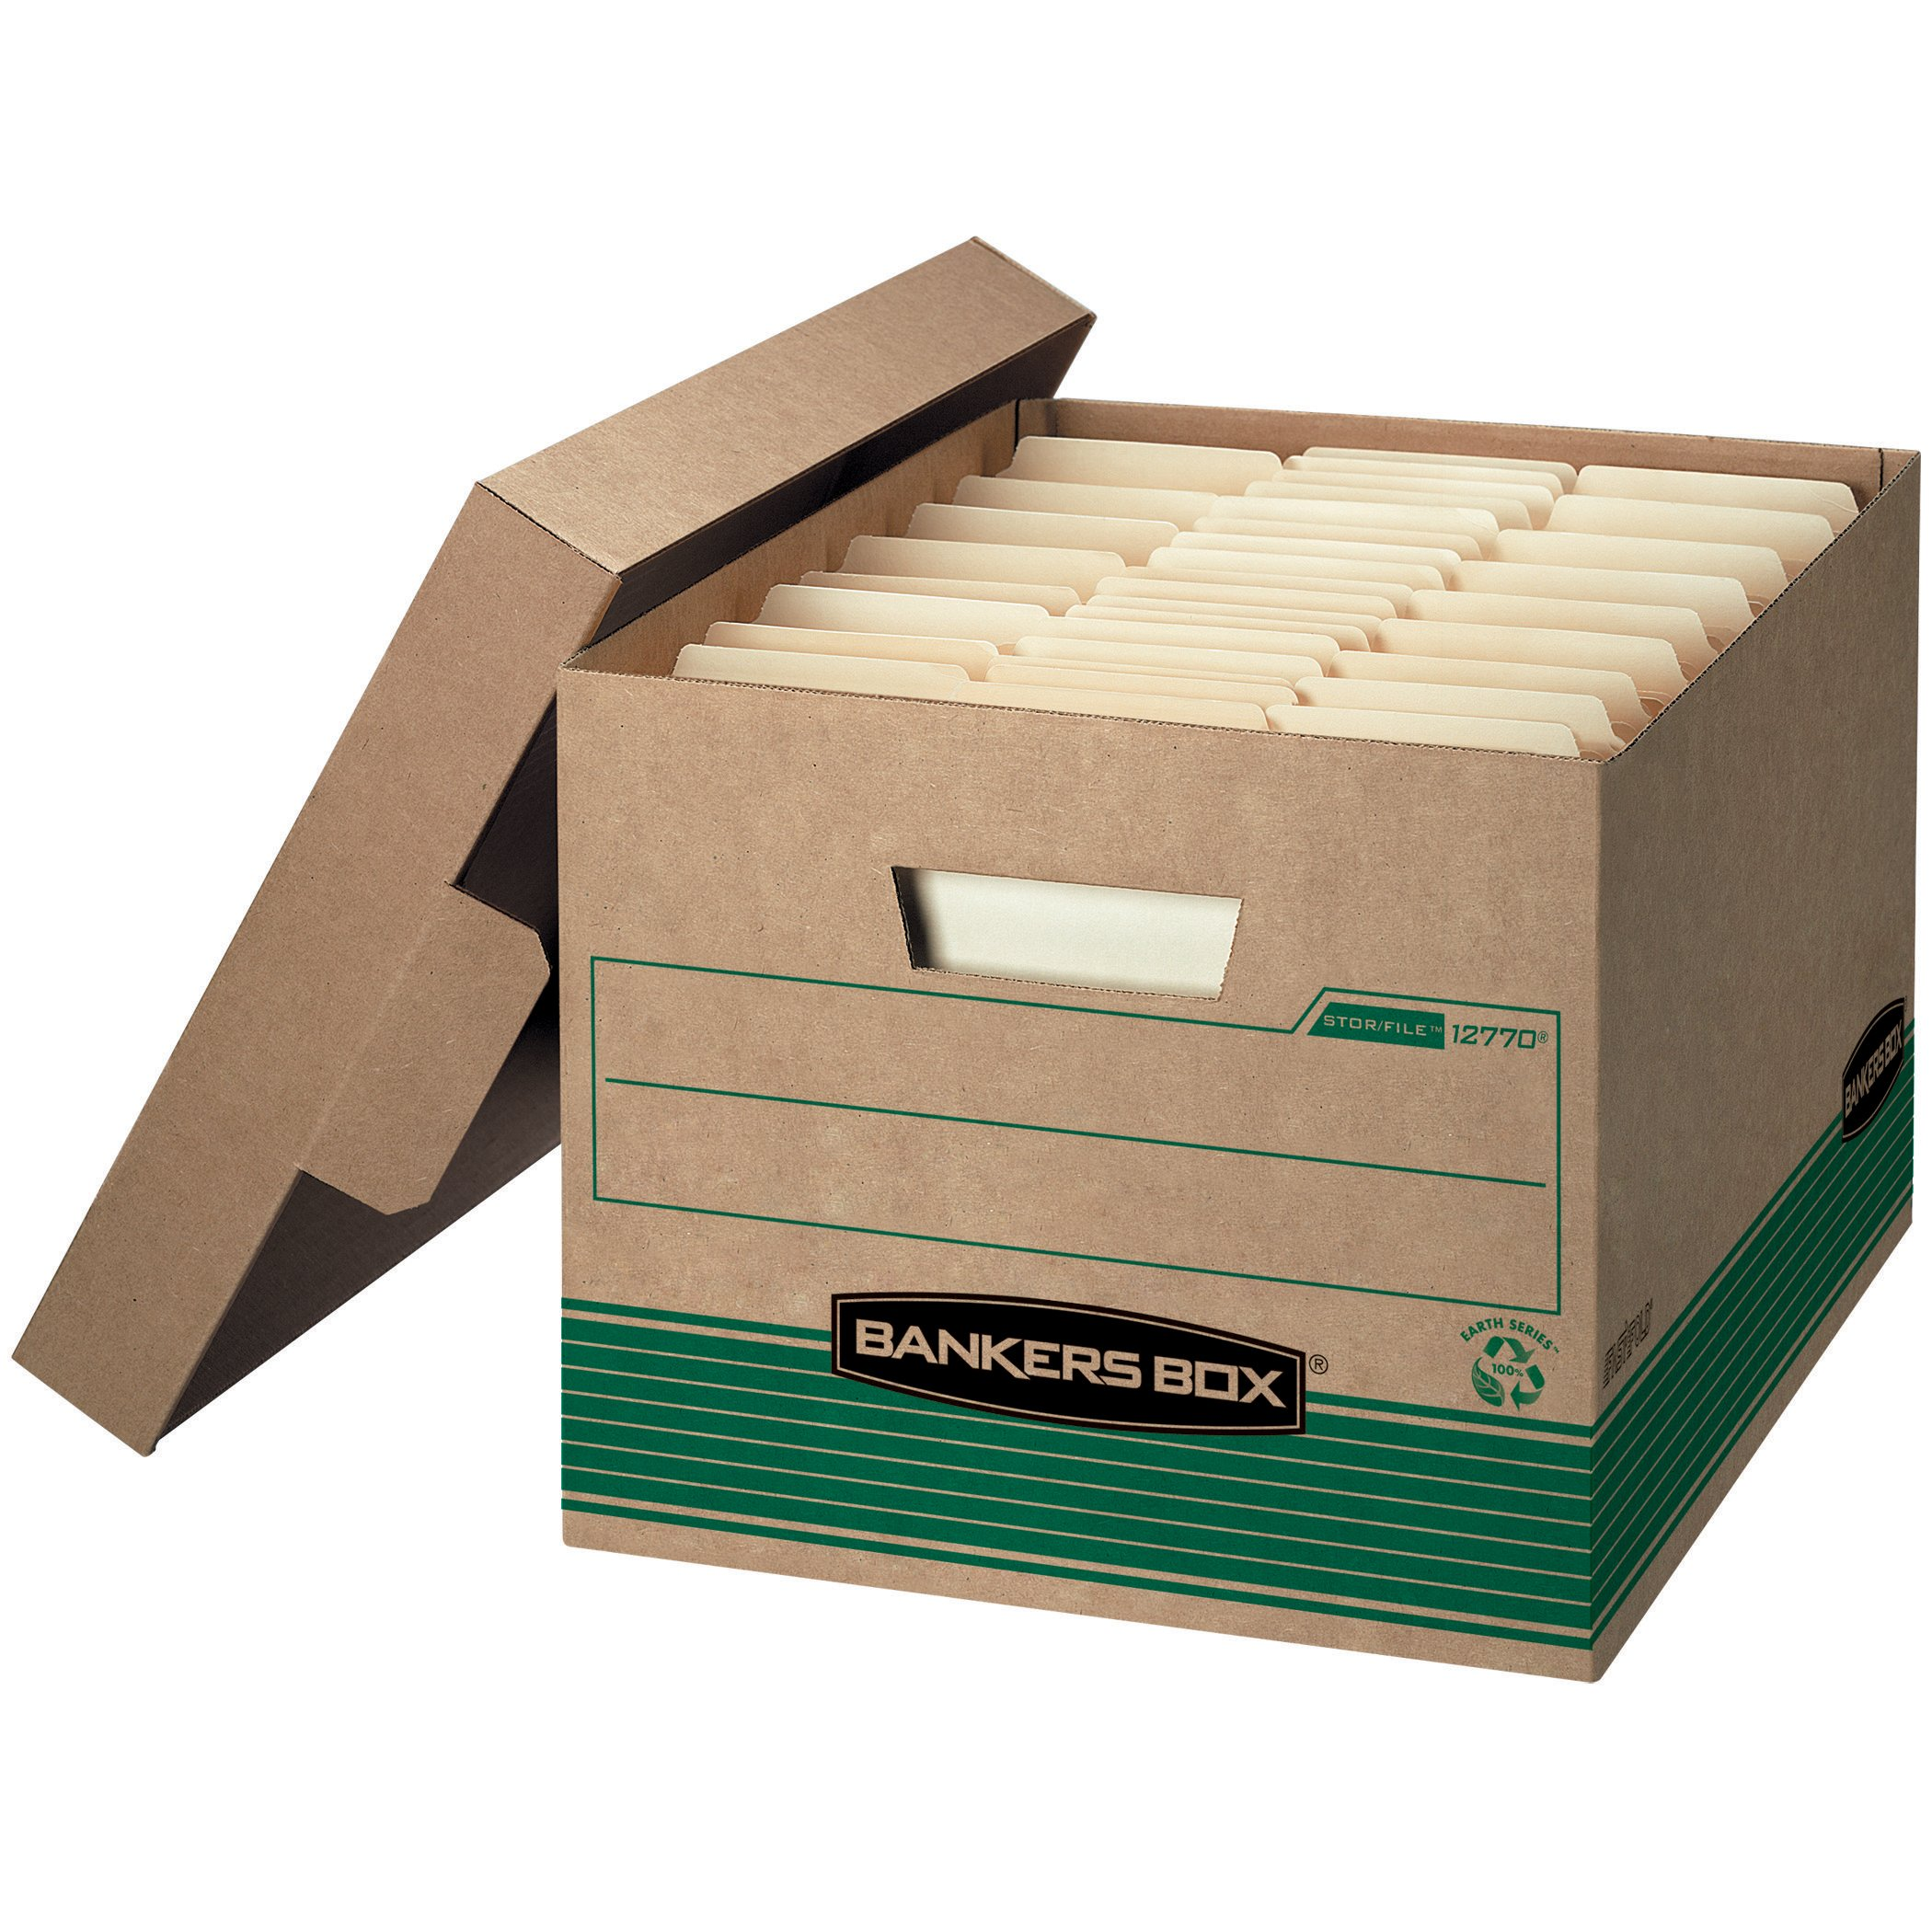 Bankers Box STOR/FILE Medium-Duty Storage Boxes, FastFold, Lift-Off Lid, 100% Recycled, Letter/Legal, Case of 12 (12770) by Bankers Box